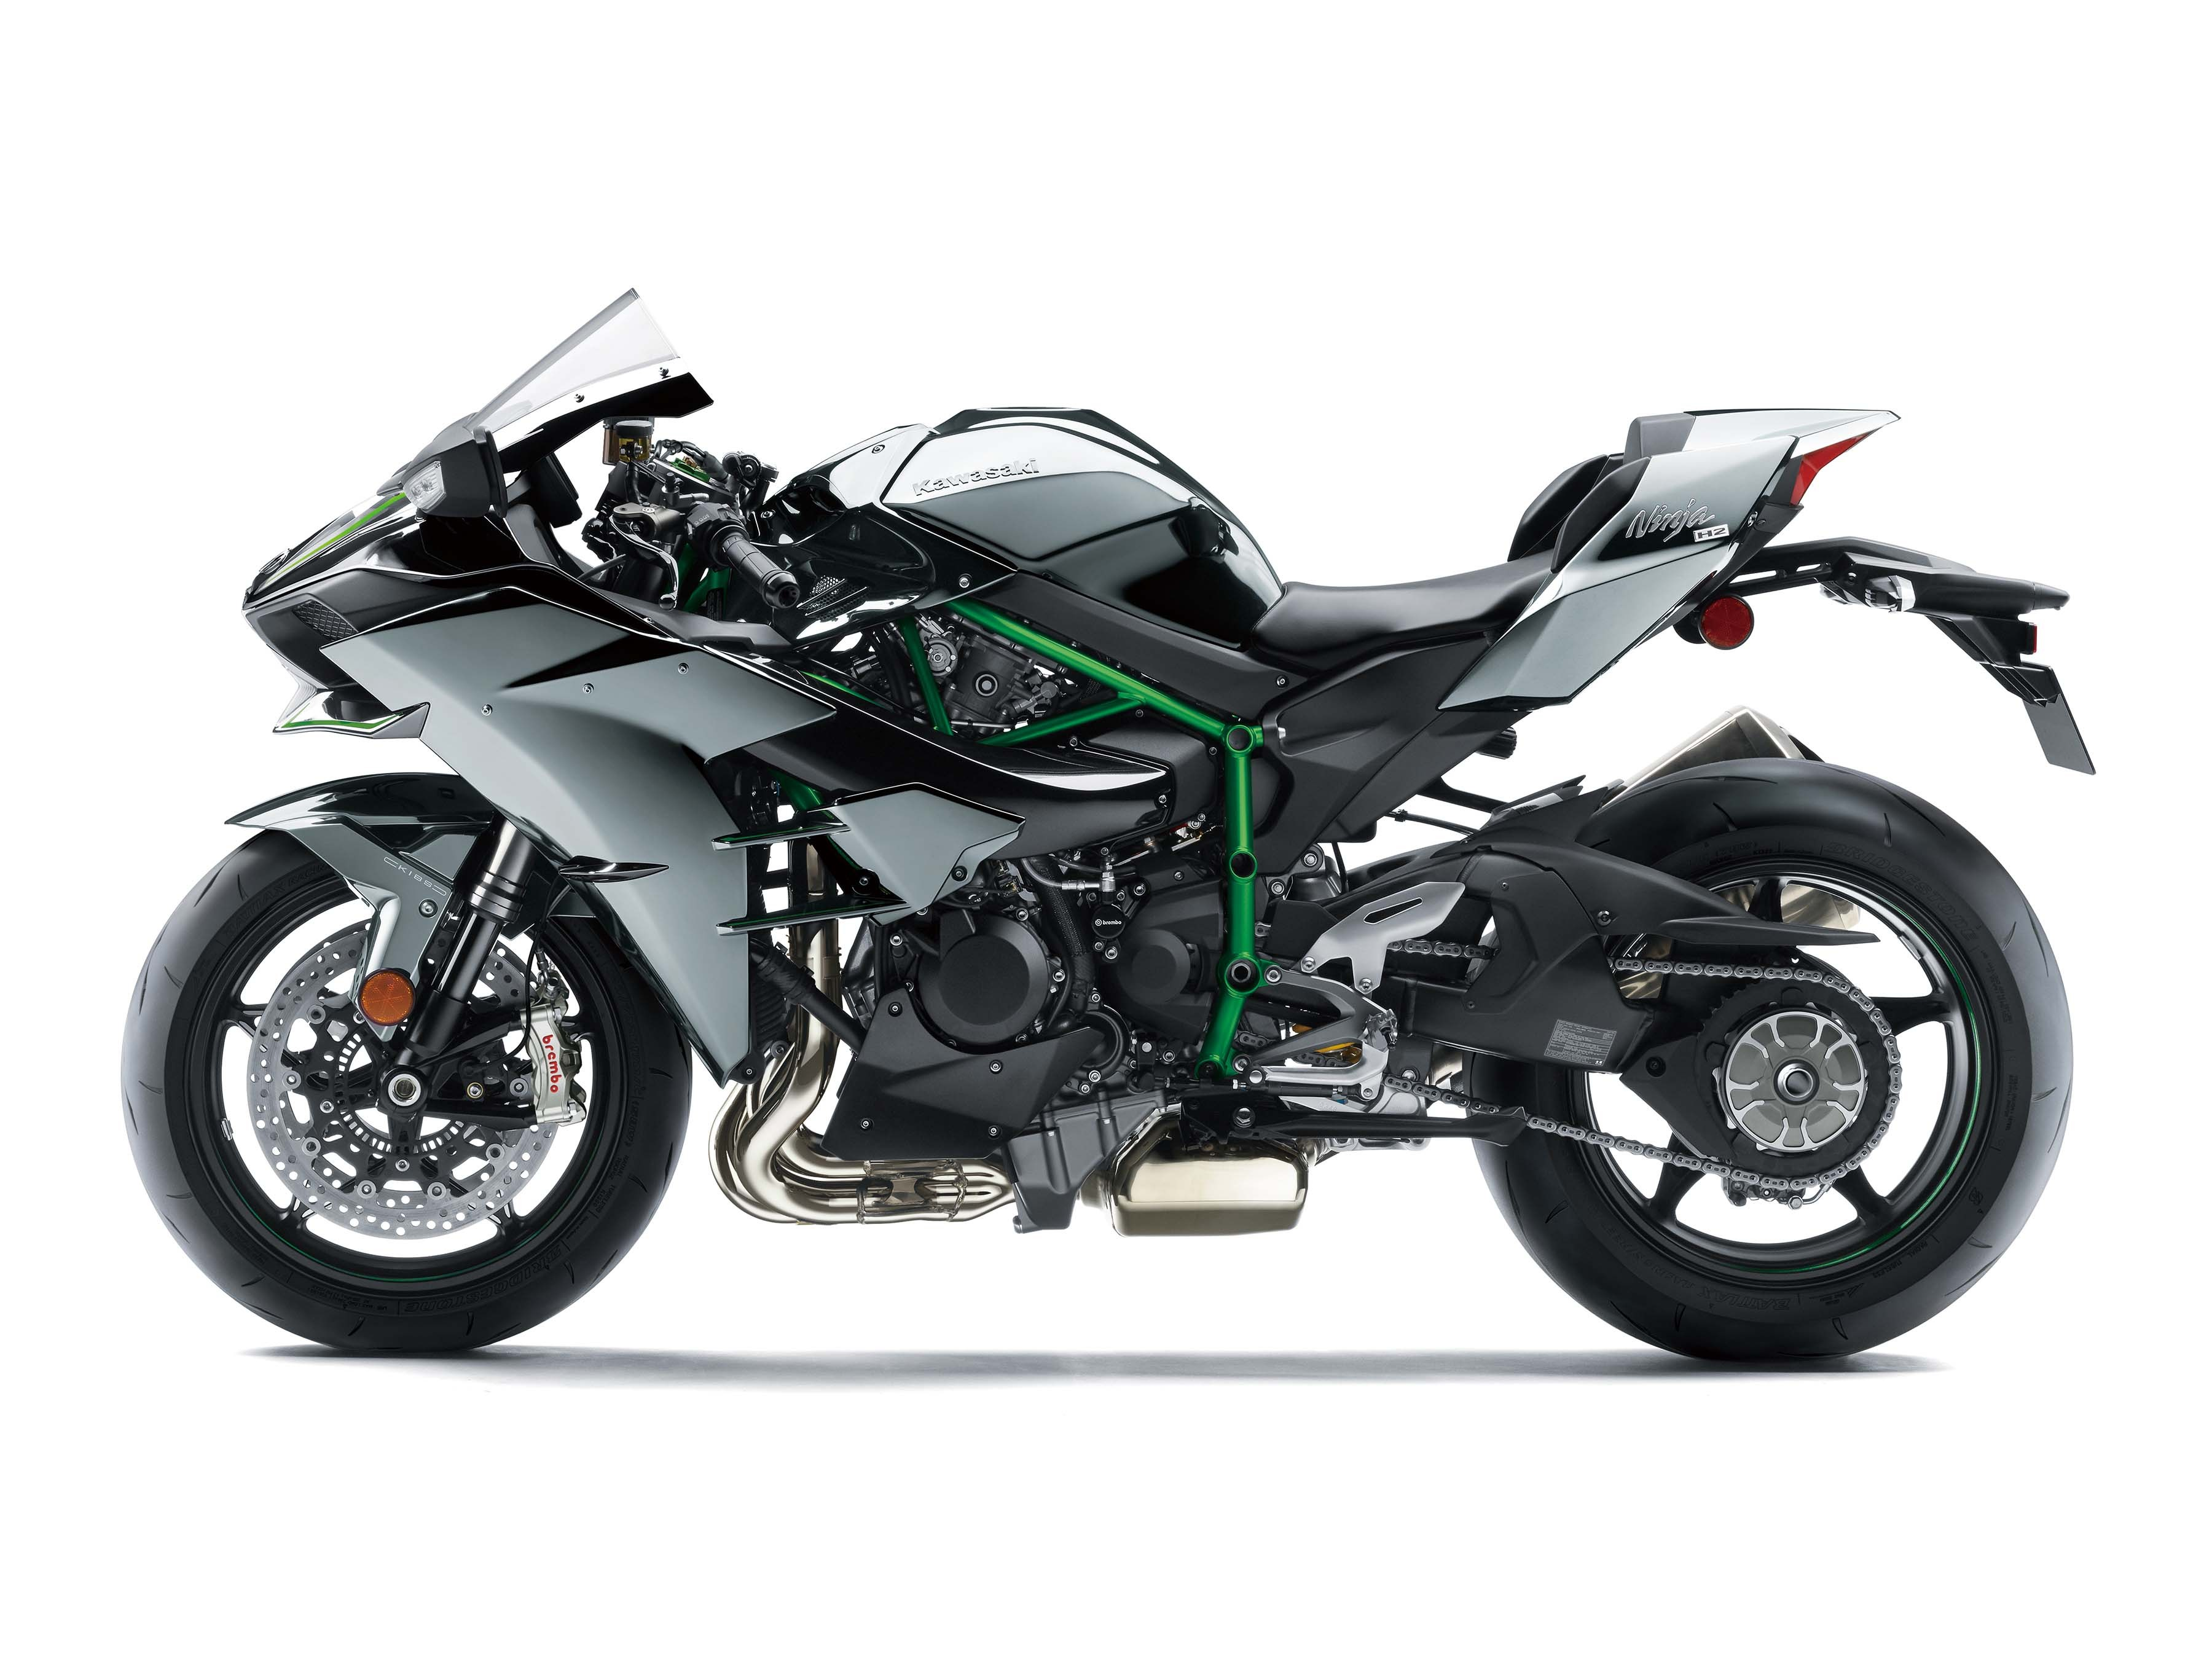 Kawasaki Has Upped The Game With The 2019 Ninja H2 Machines Top Speed